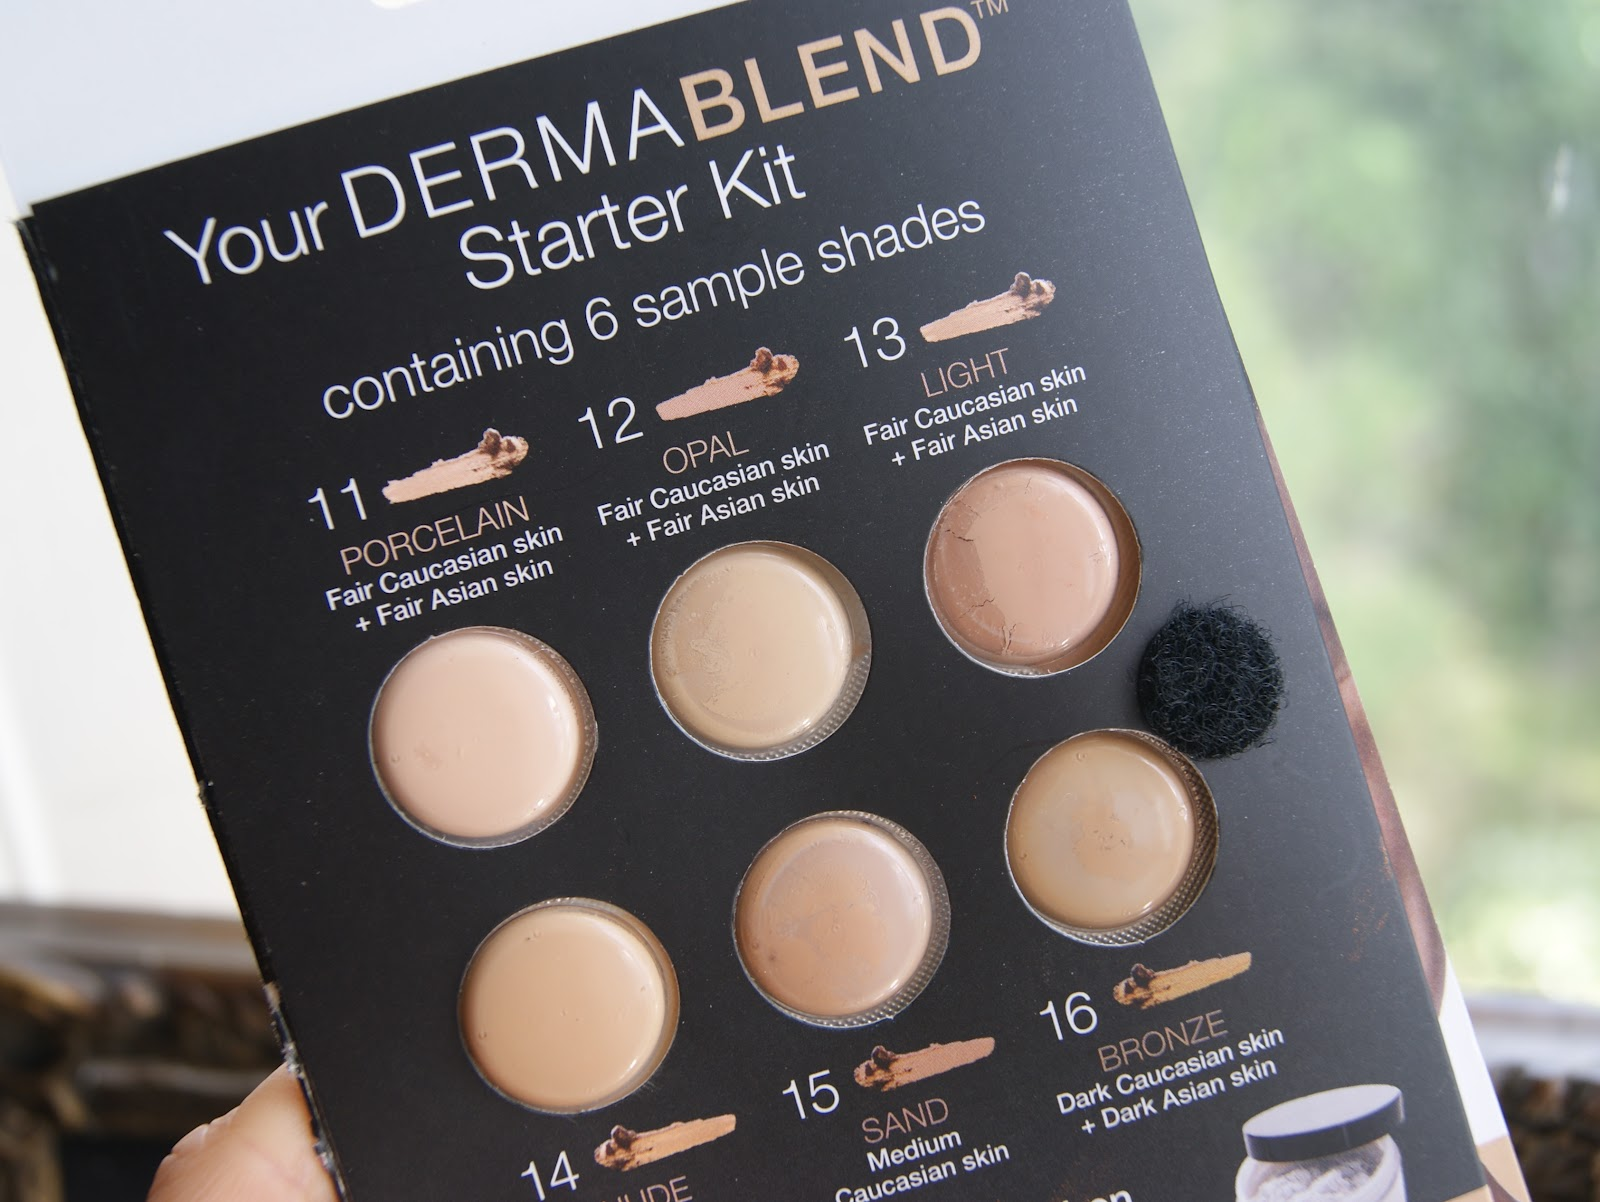 Dermablend sample kit